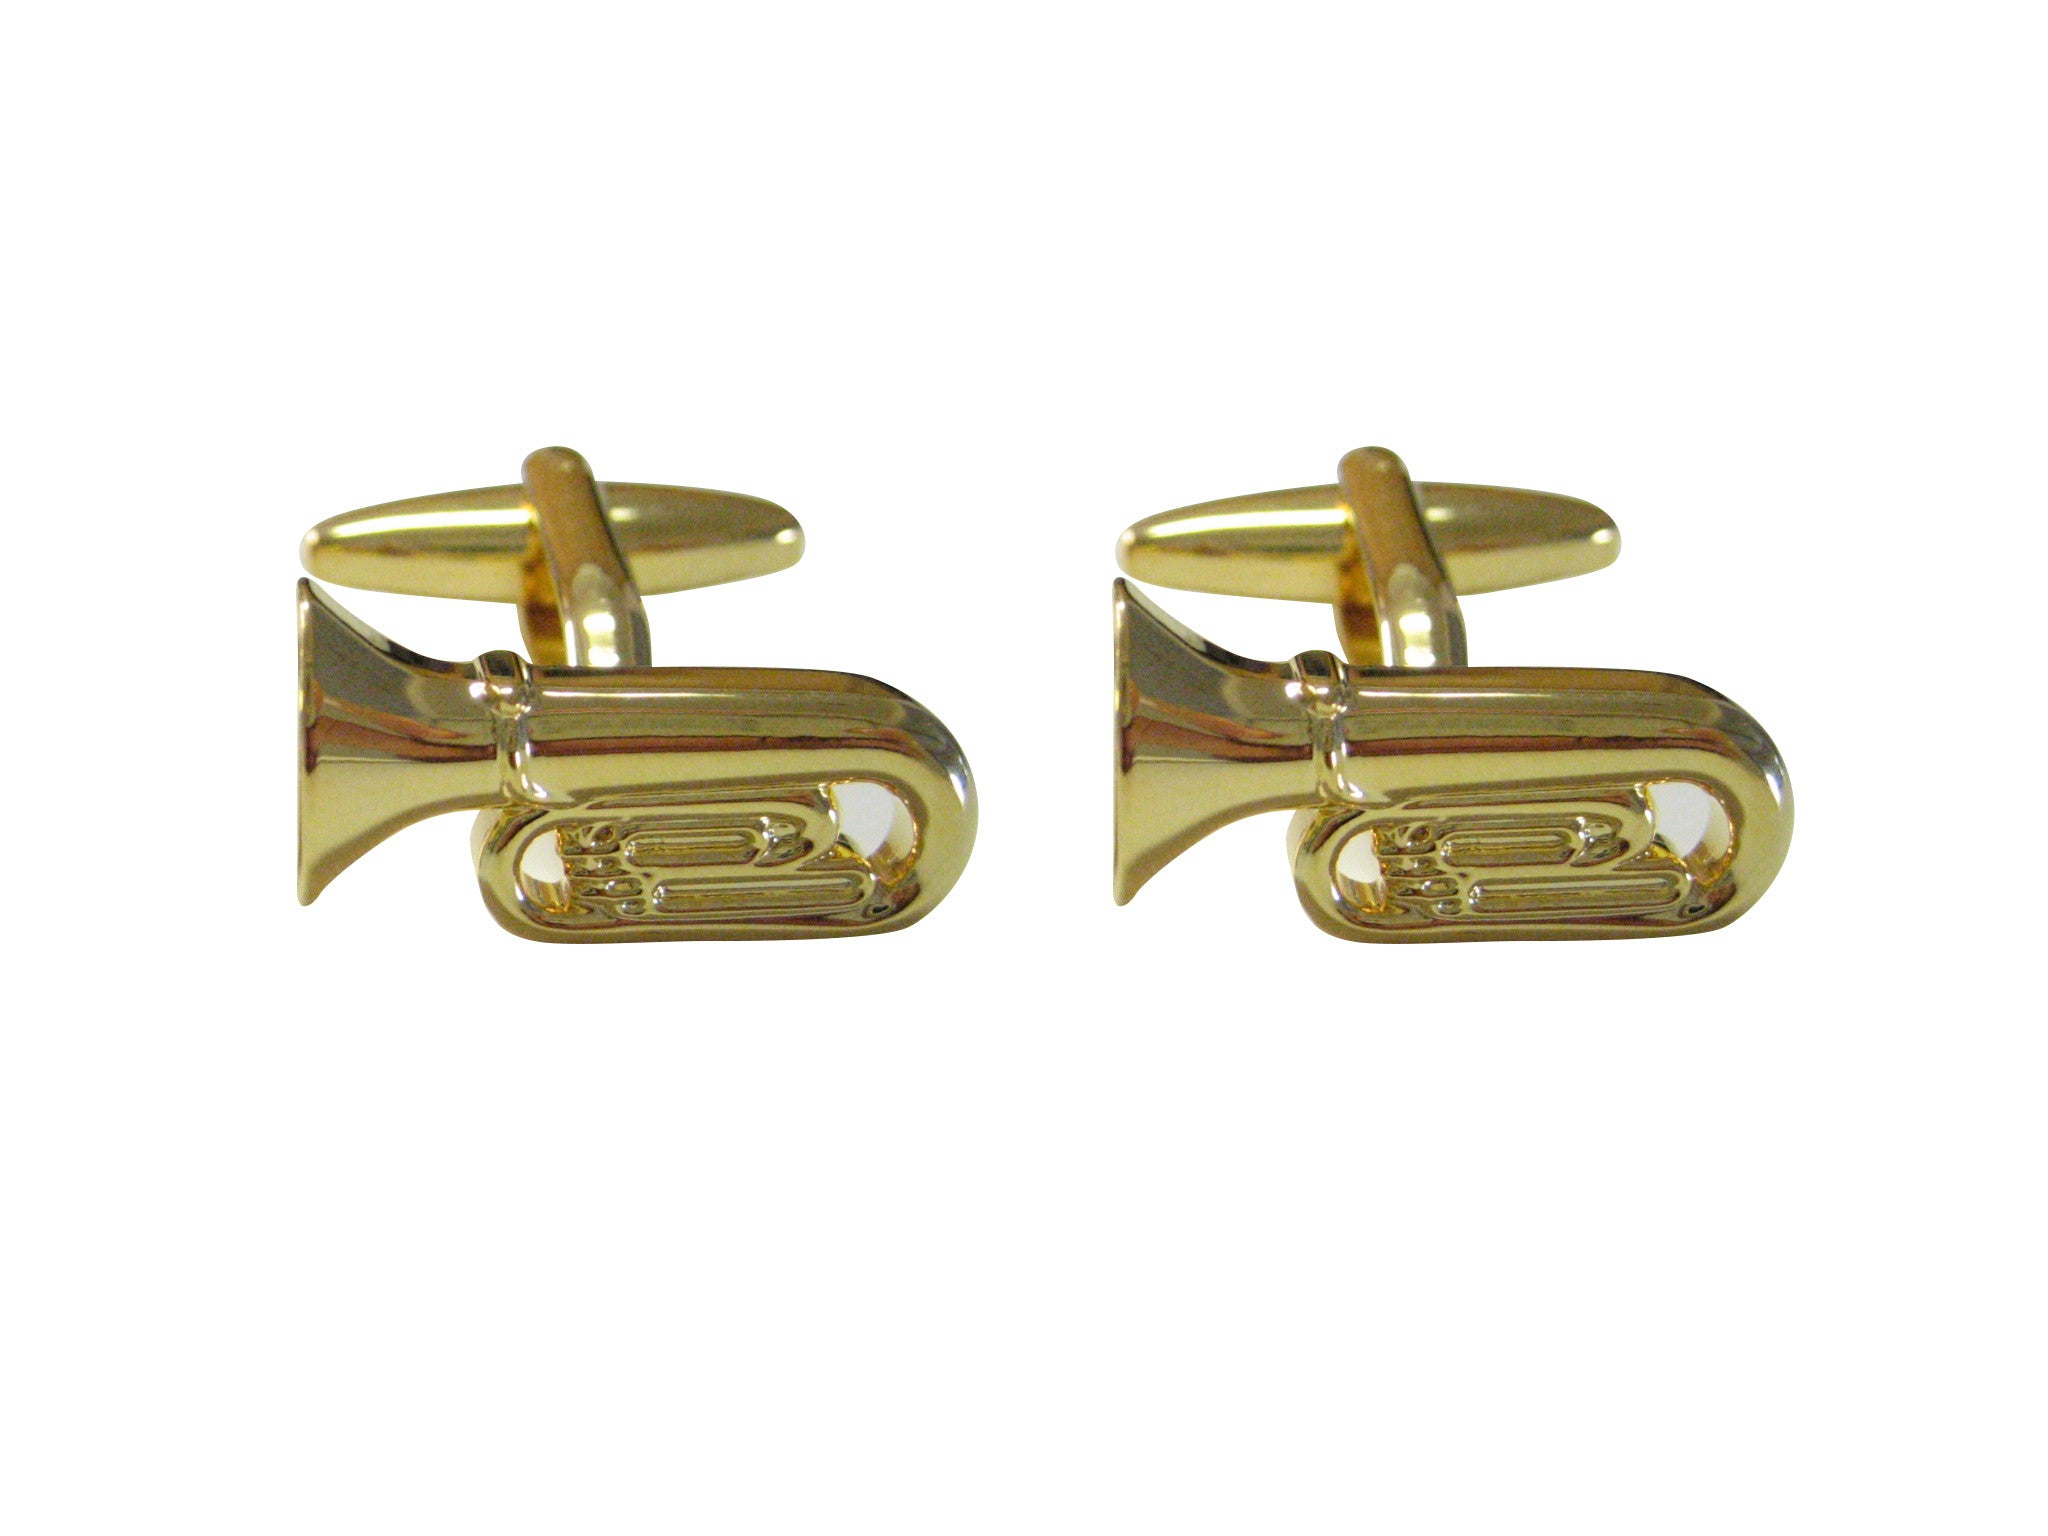 Tuba Musical Instrument Cufflinks